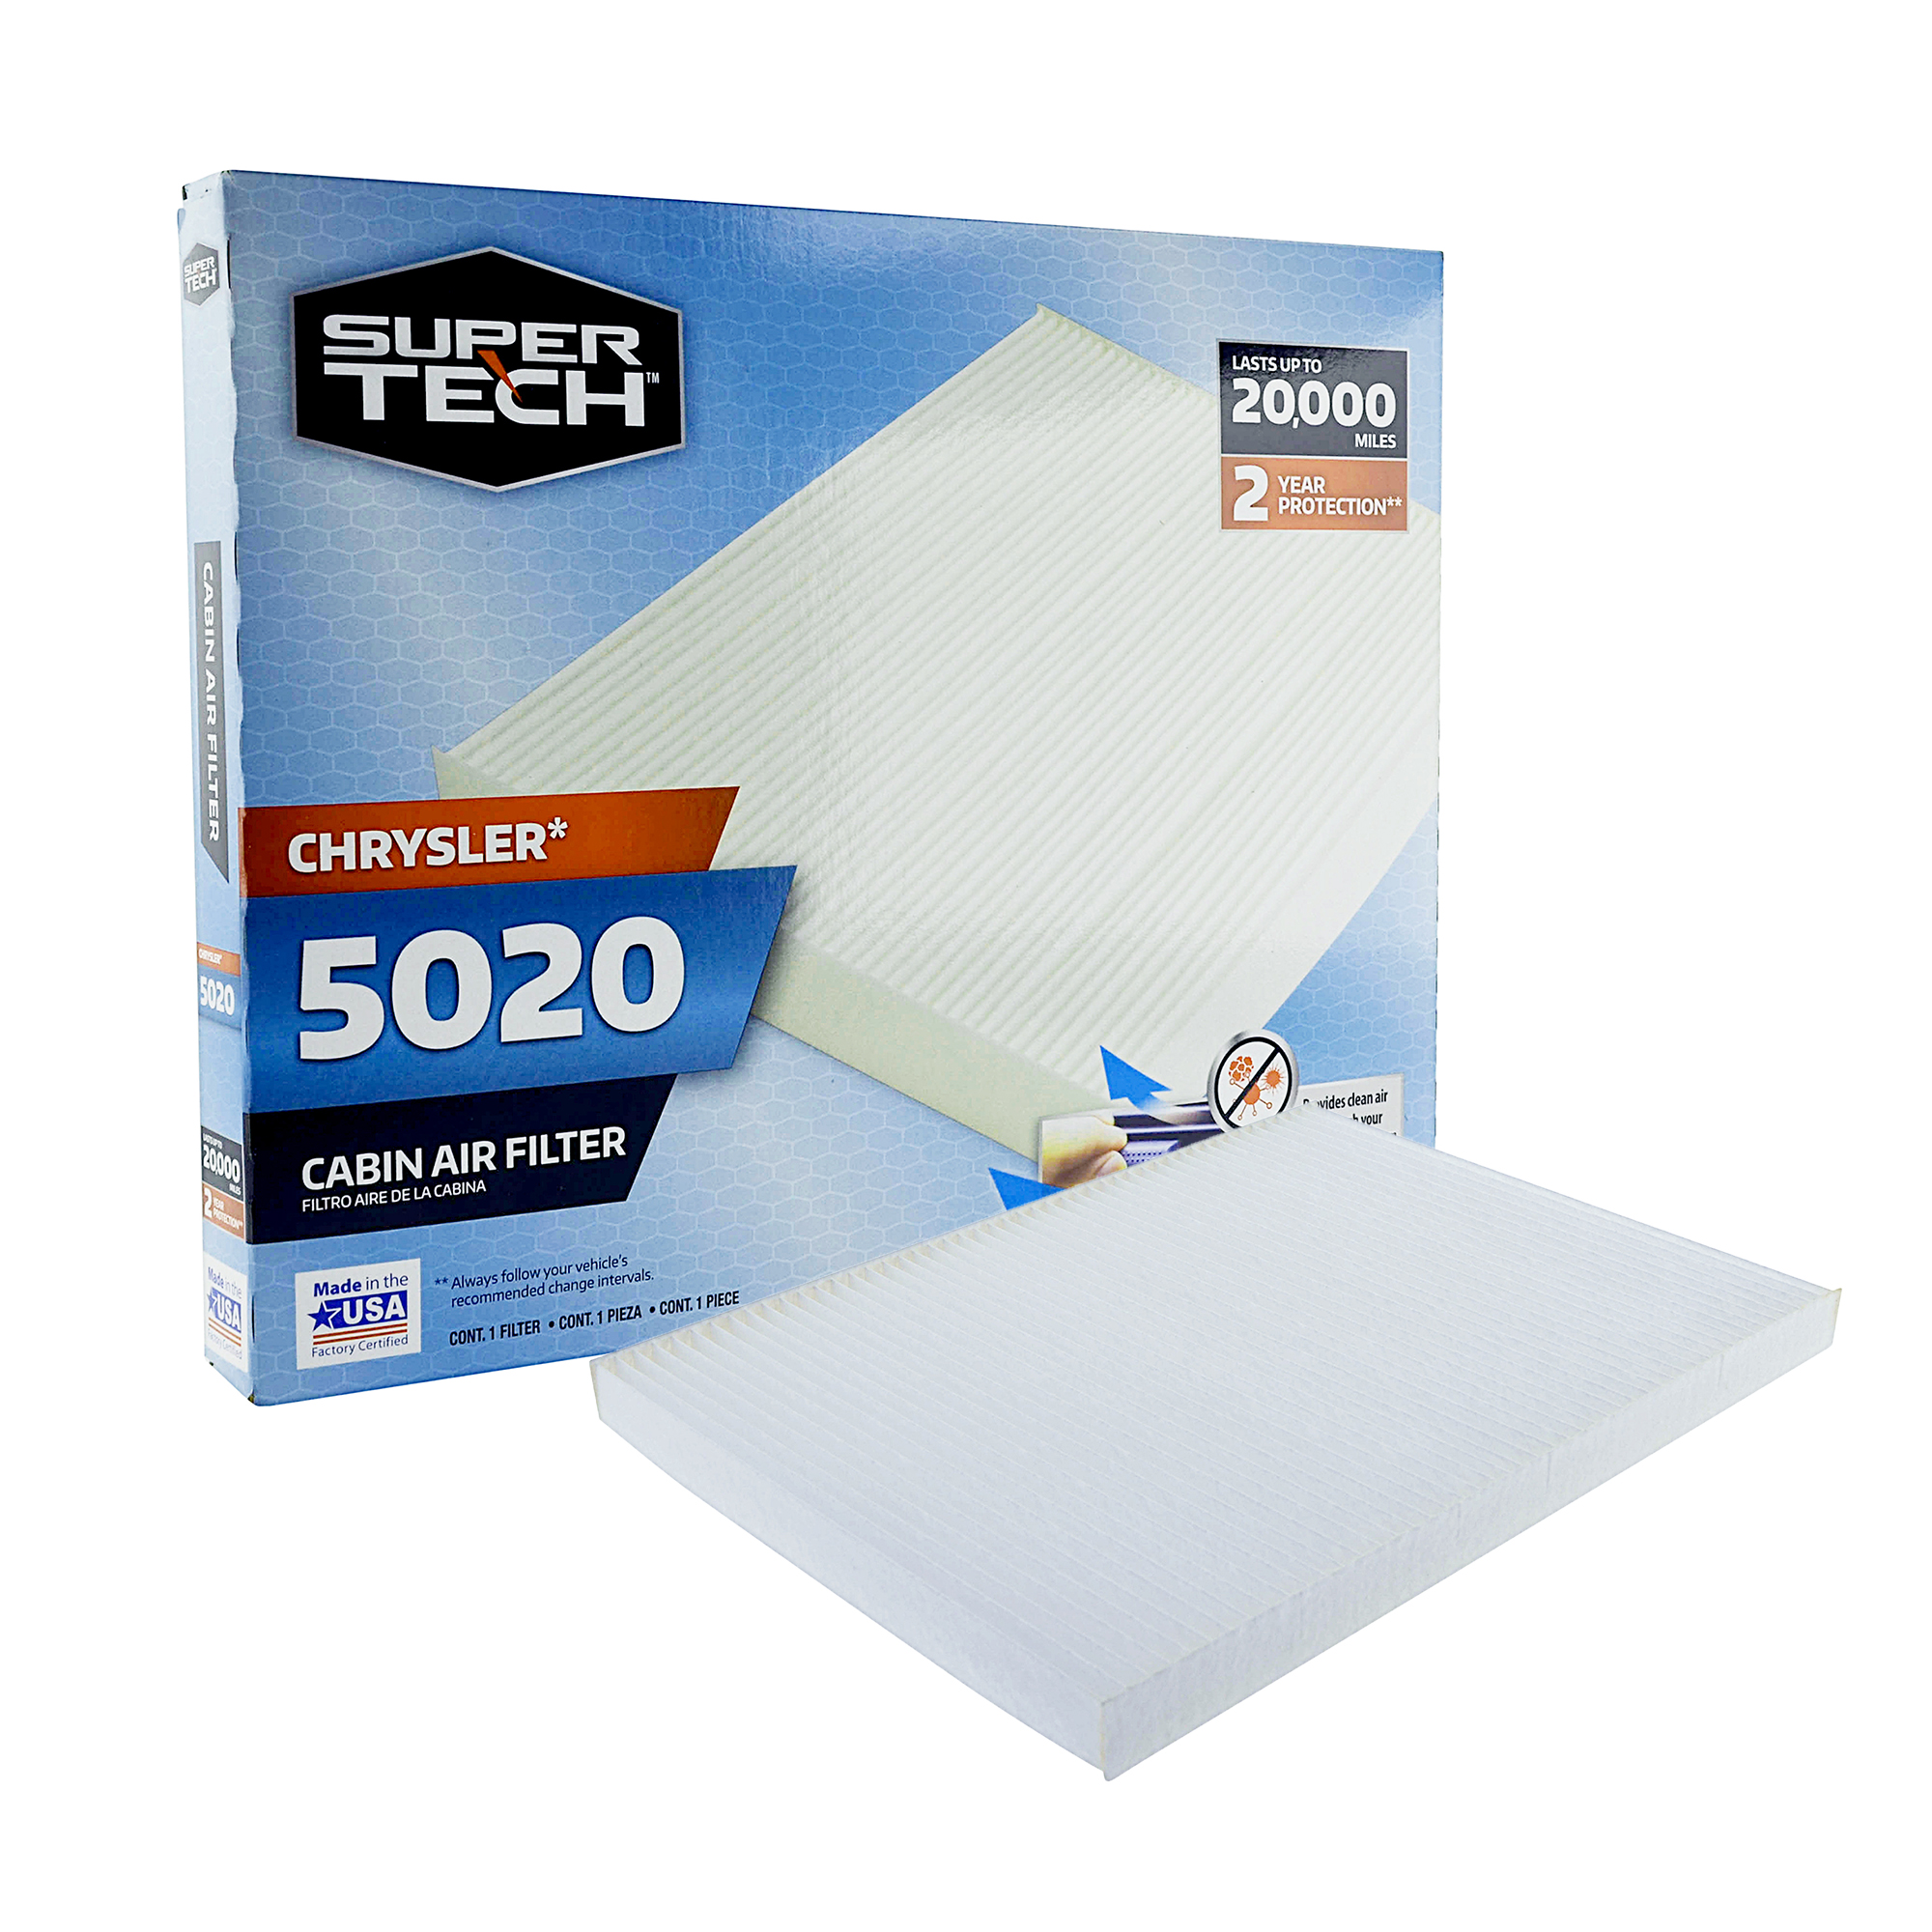 SuperTech Cabin Air Filter 5020, Replacement Air/Dust Filter for Chrysler